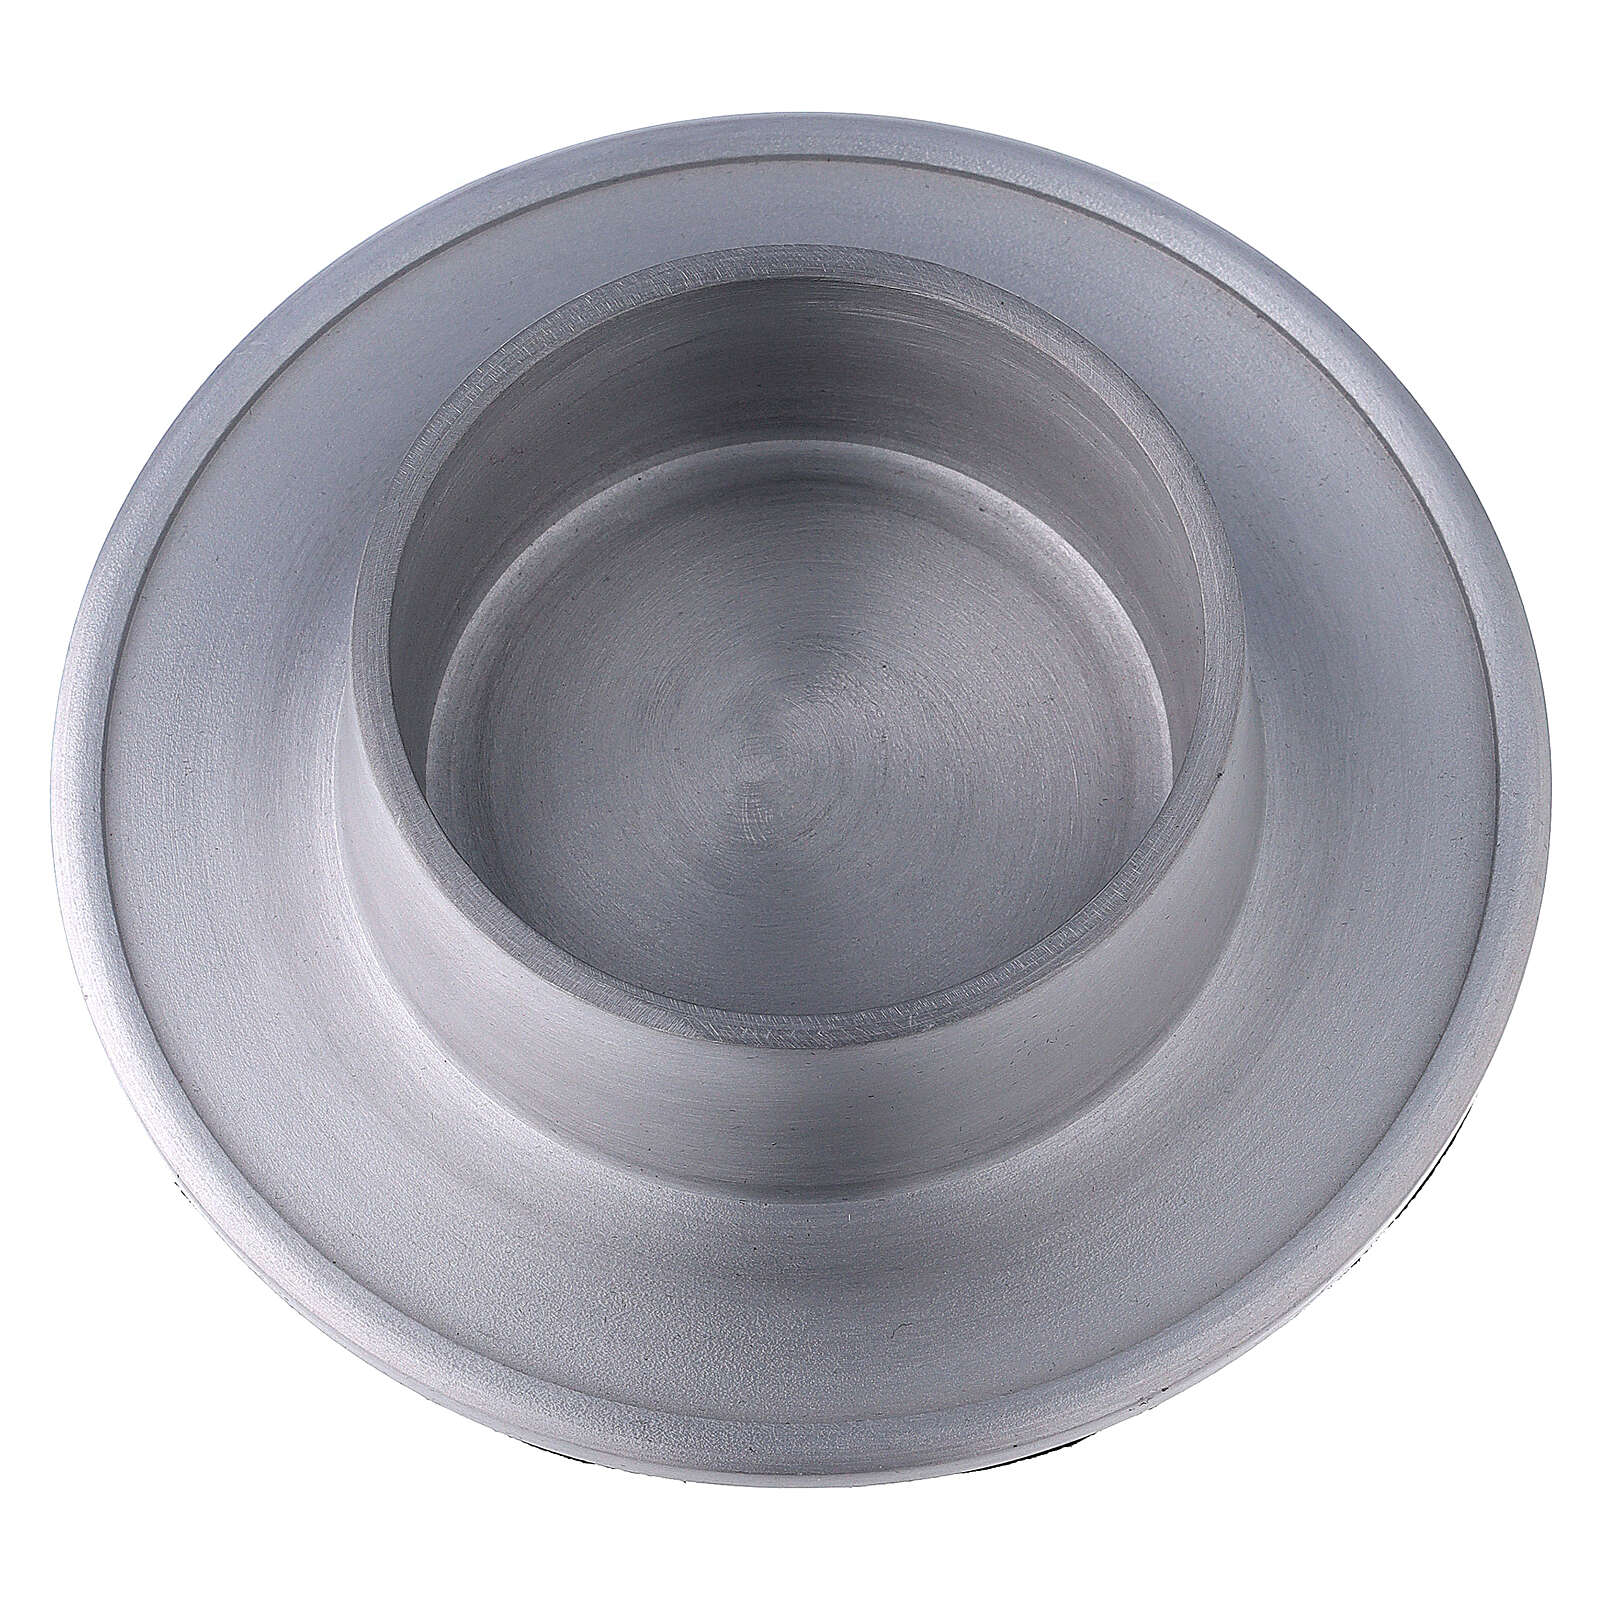 Aluminium candle holder with satin finish 2 3/4 in 4